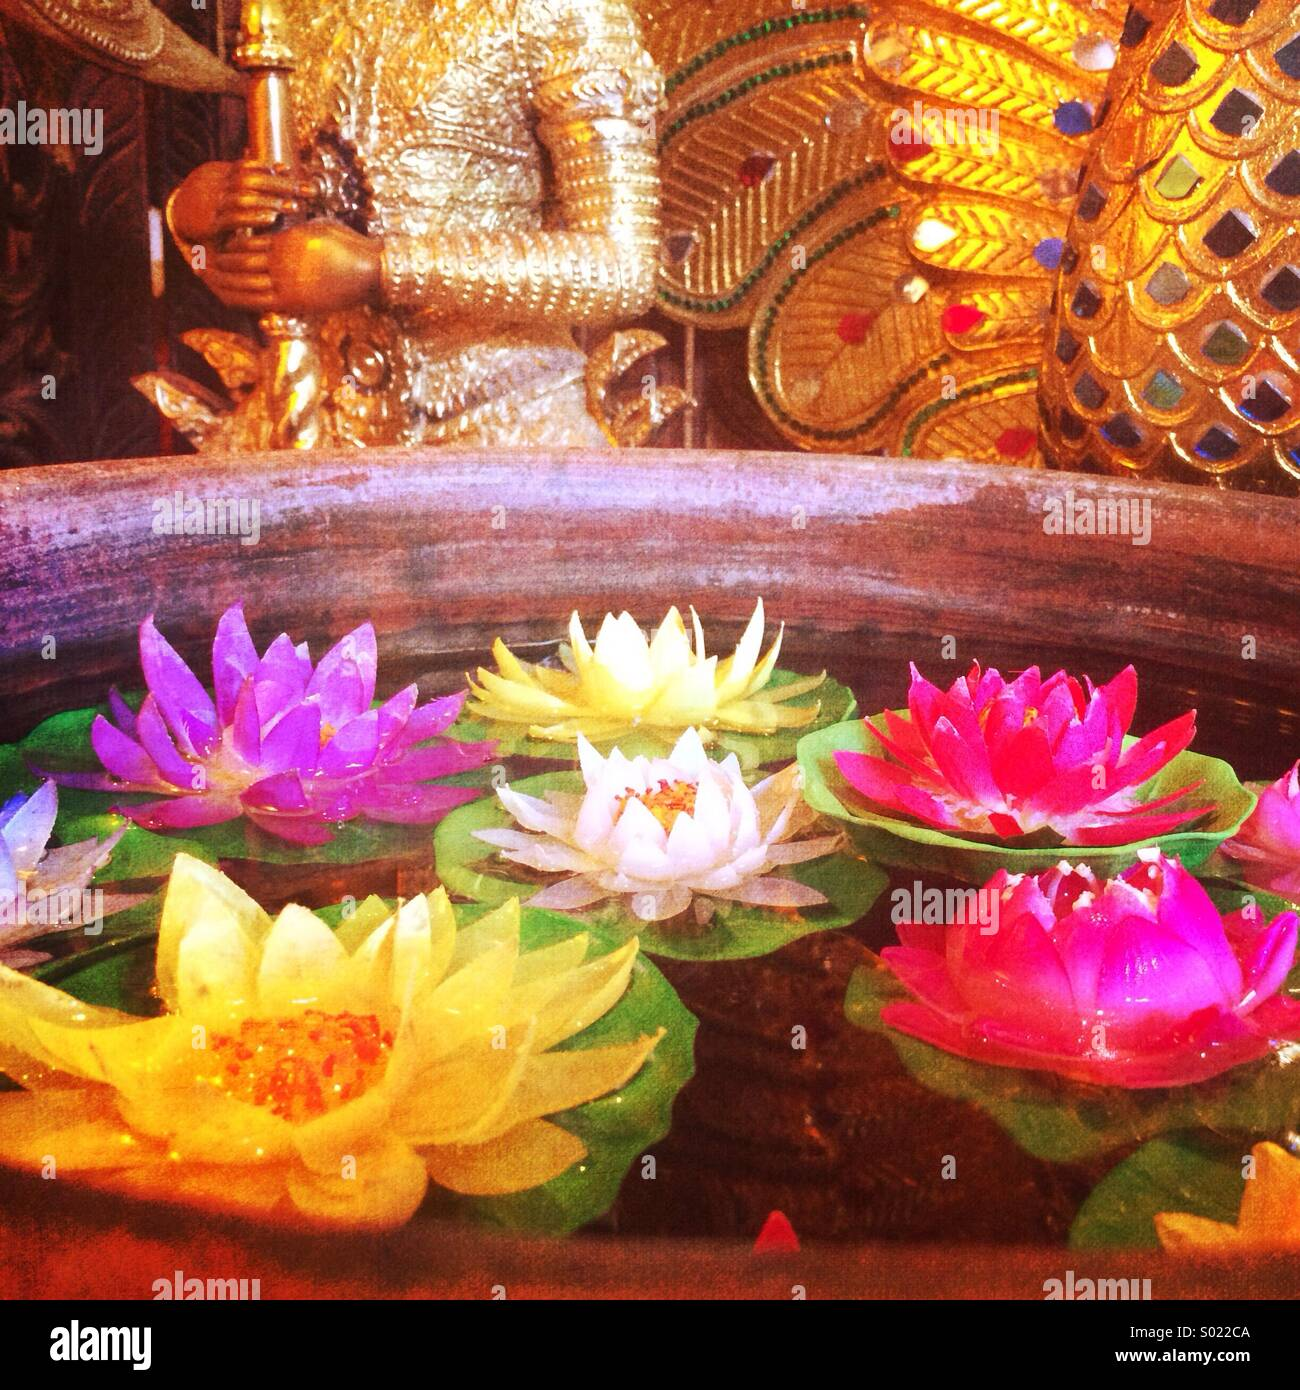 Colorful lotus flowers float in water in front of golden asian stock colorful lotus flowers float in water in front of golden asian figurines mightylinksfo Images